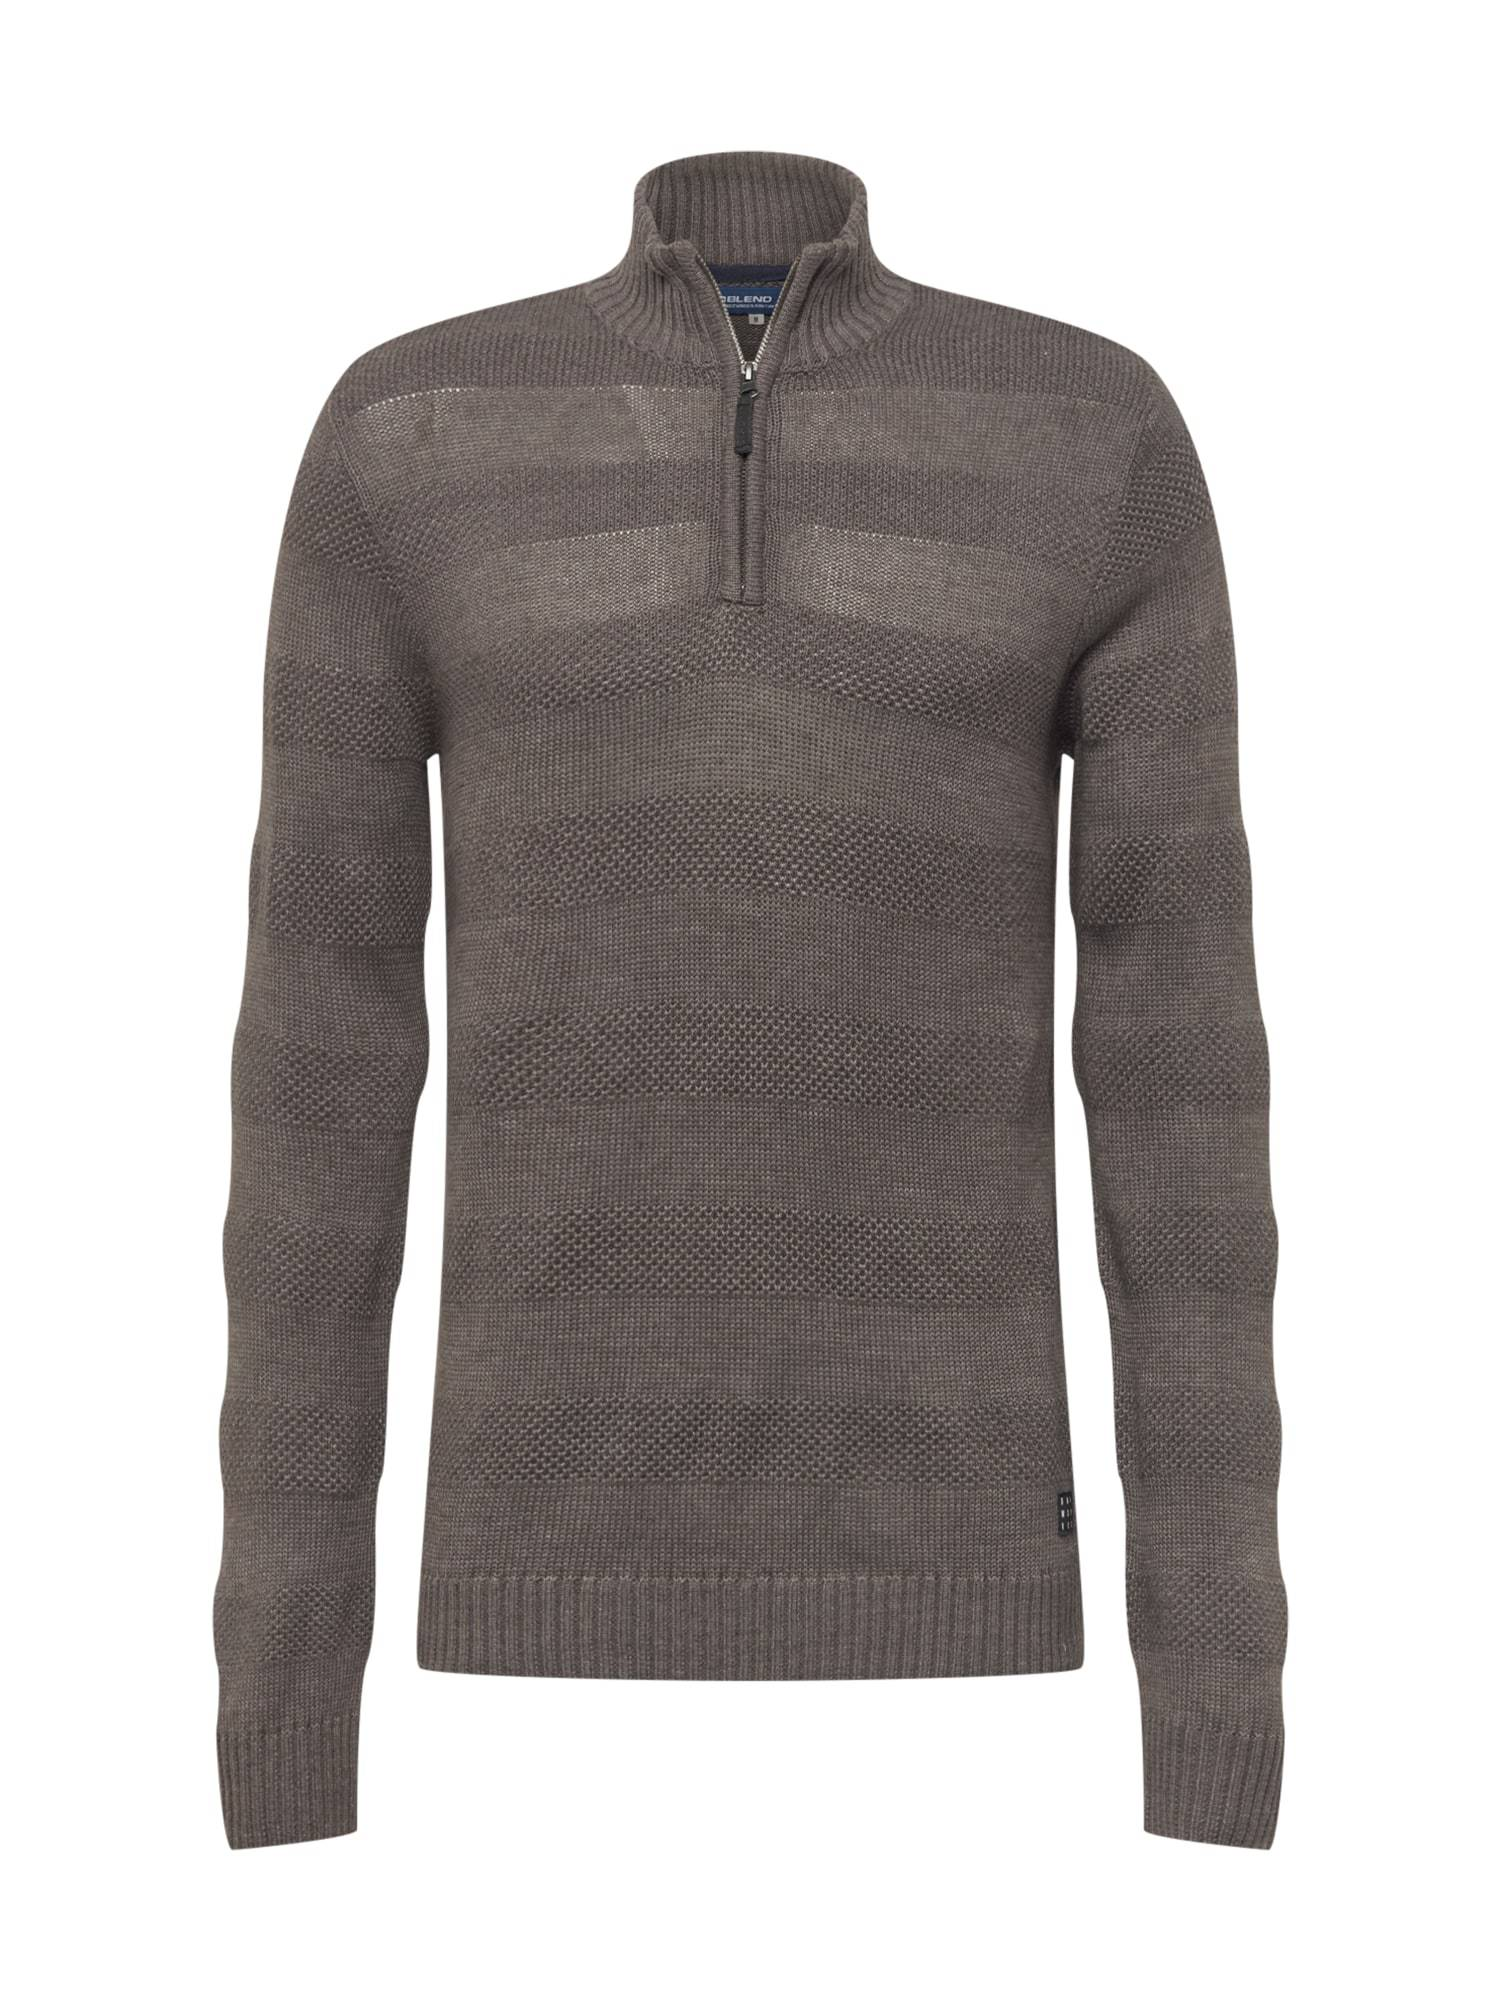 BLEND Pull-over 'Nantes'  - Gris - Taille: XXL - male